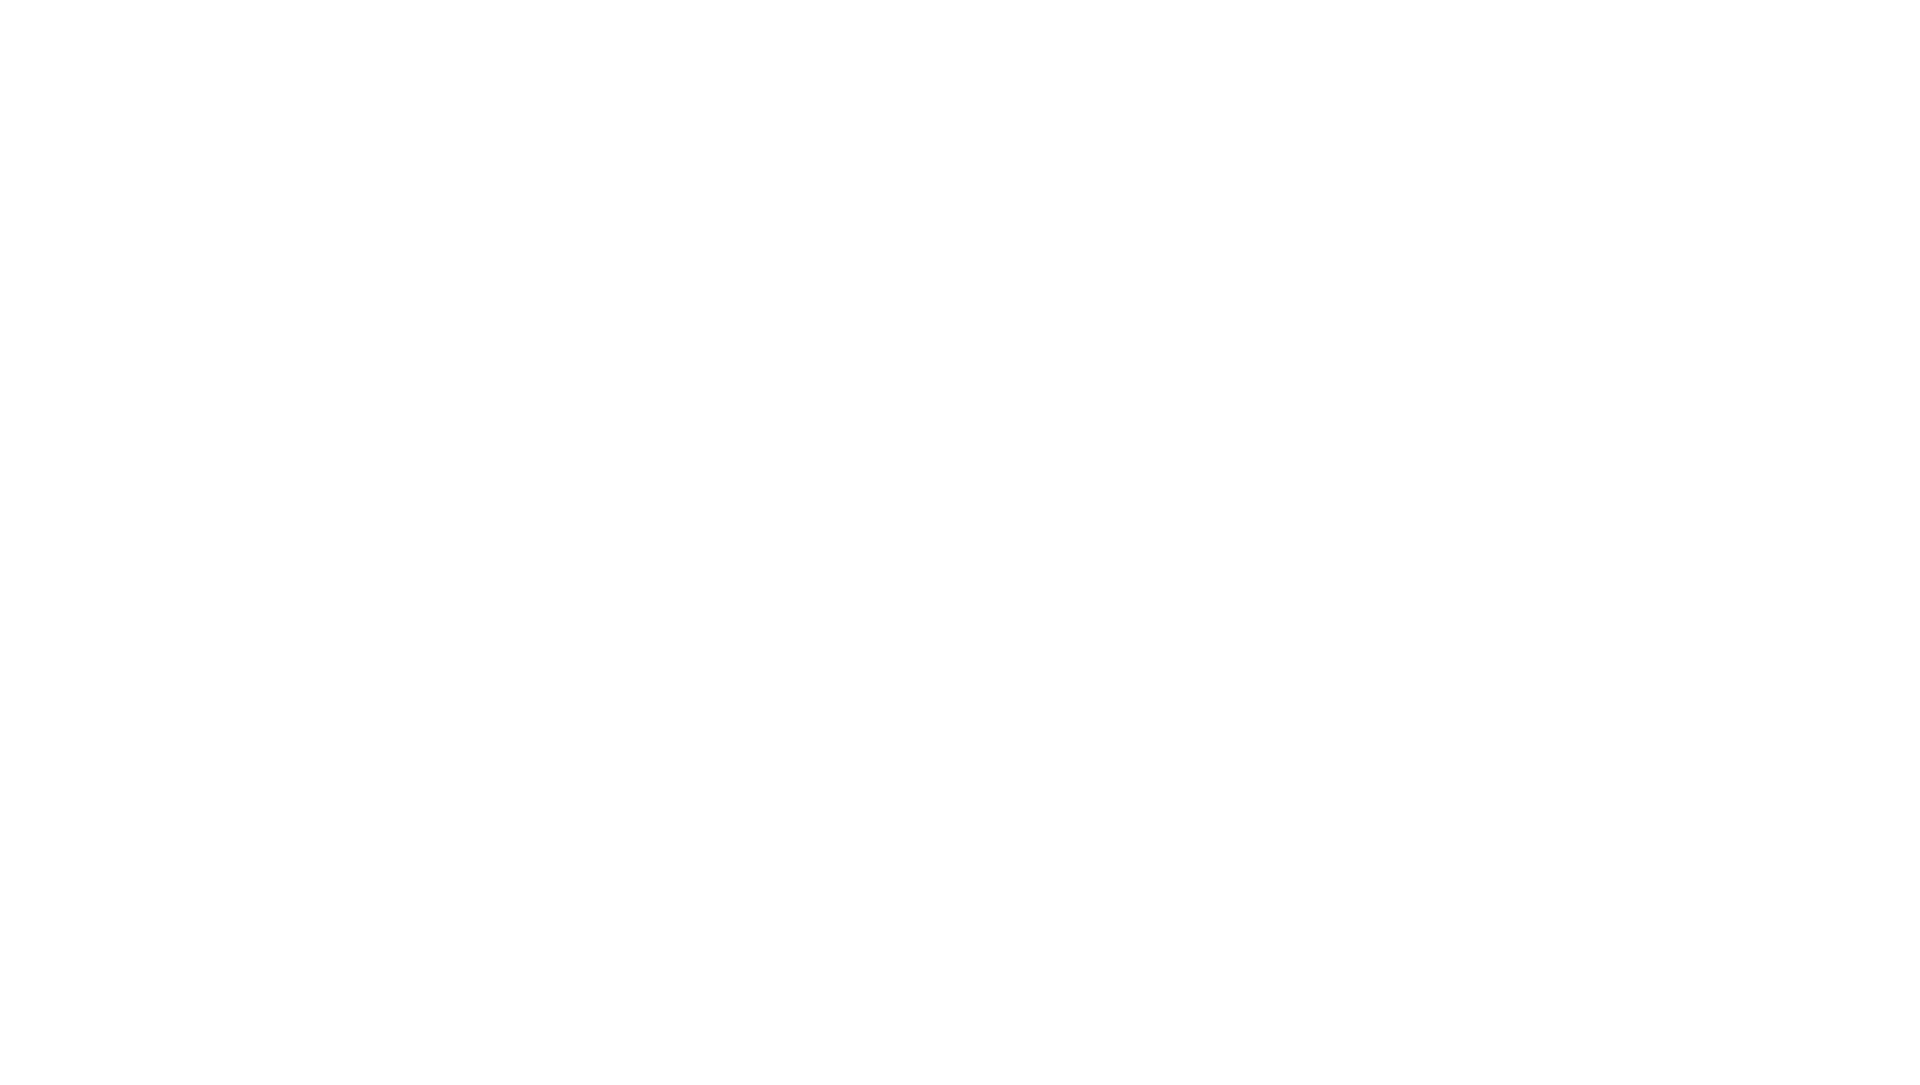 Enjoy hand-wrapped gifts for just $3.00 per pair OluKai - Desktop